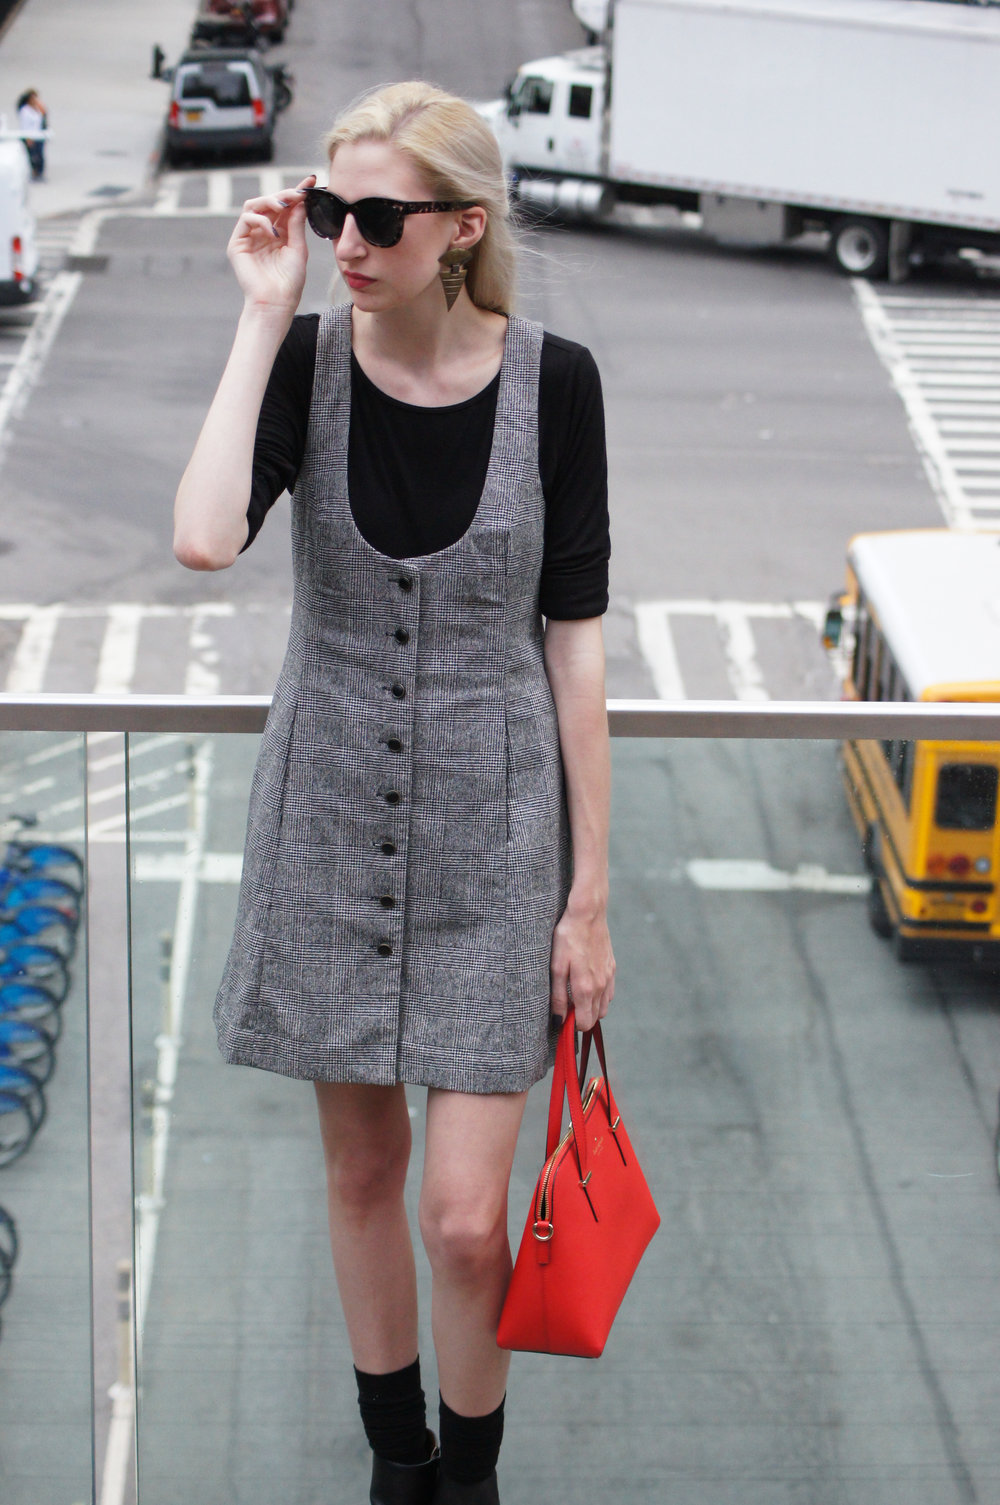 vintage tibi tweed apron dress, loft black longsleeve, Next black heeled ankle boots, kate spade cedar street maise, vintage earrings, loft audrey hepburn sunglasses - Highline Park New York City